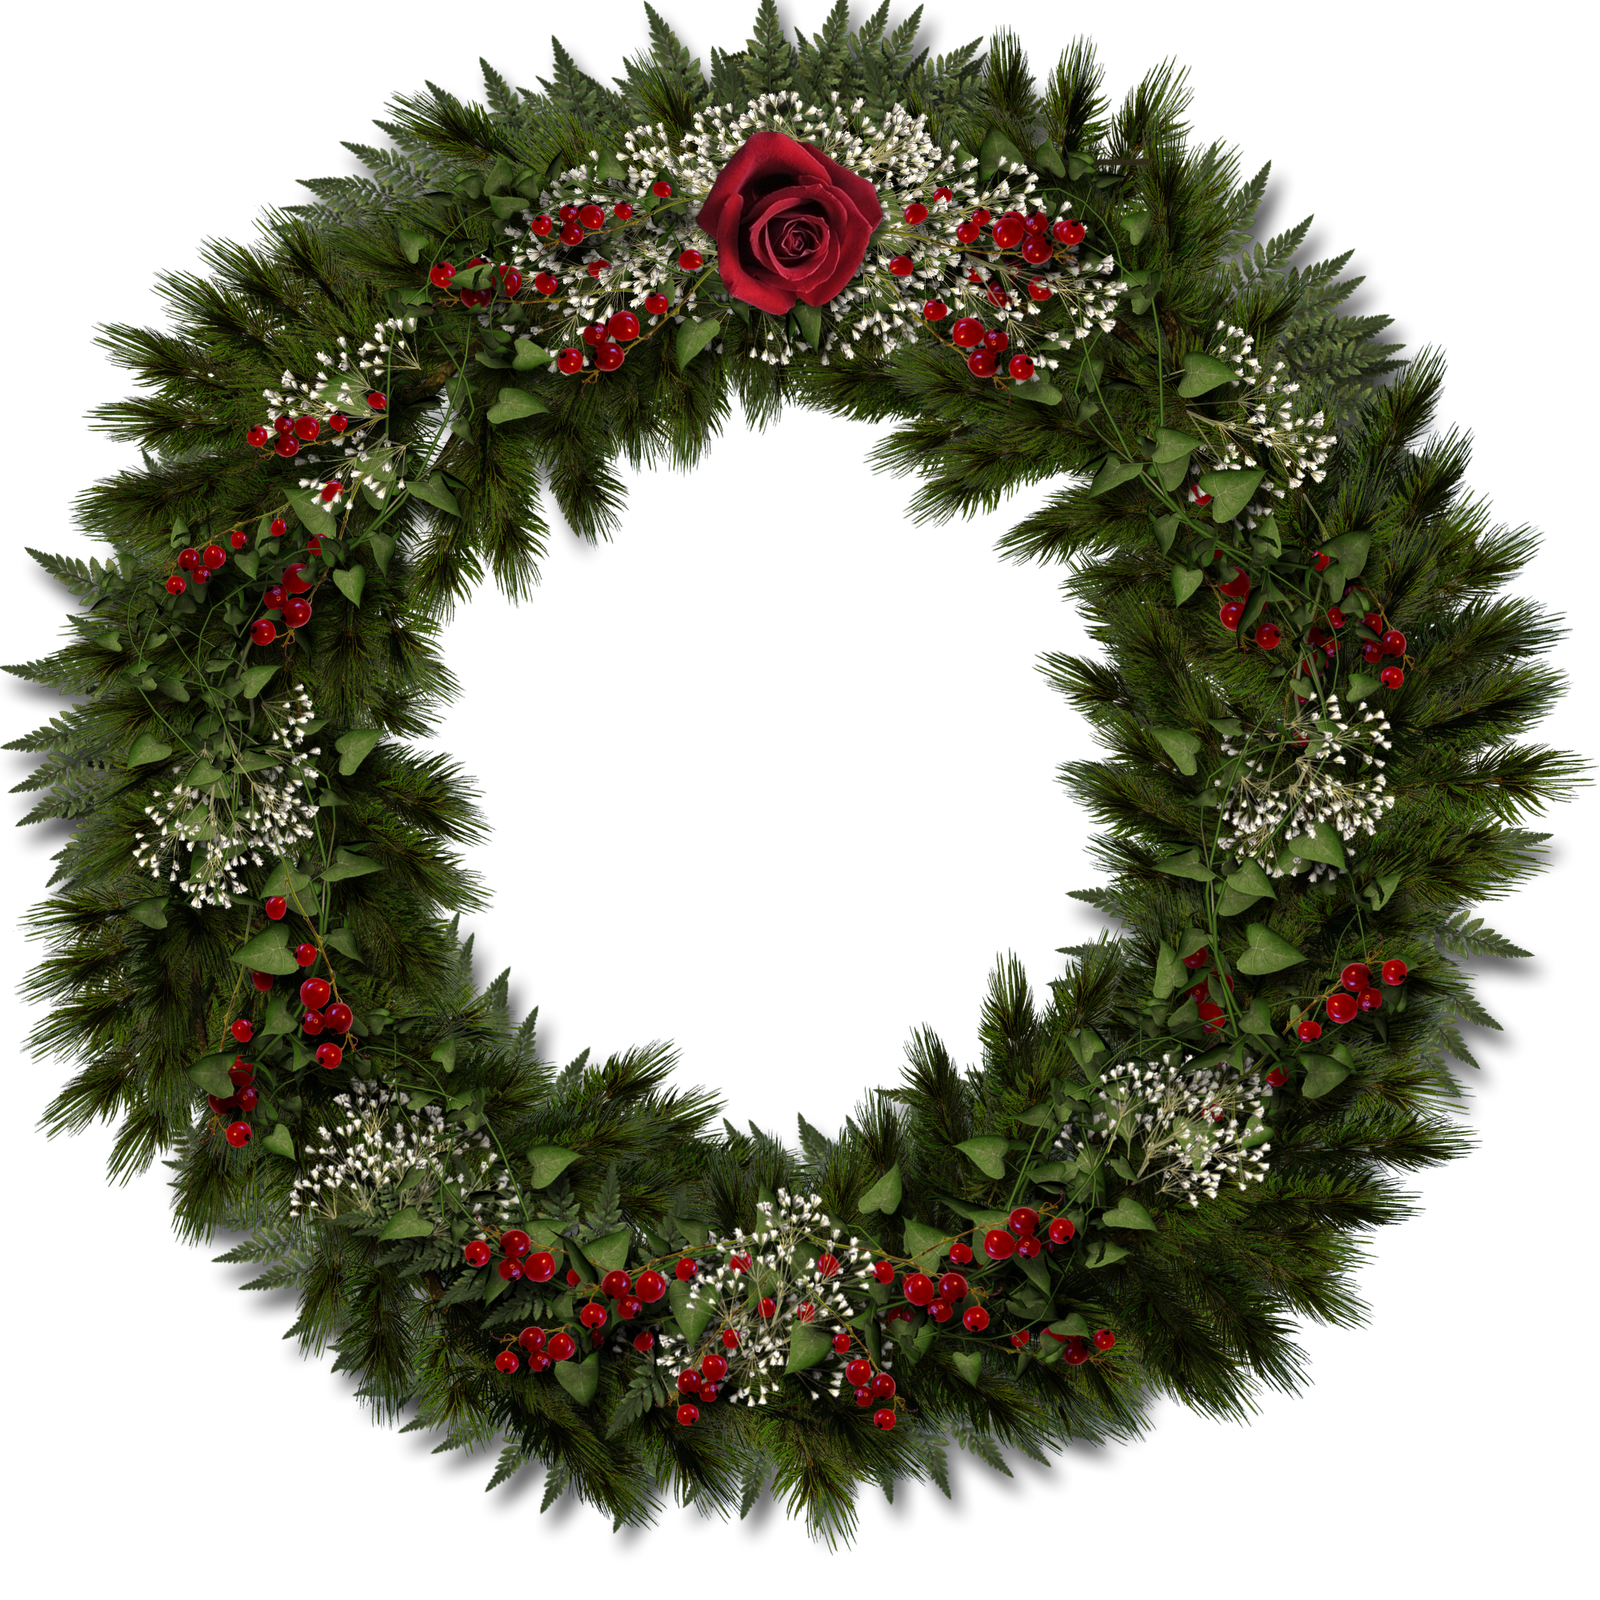 Christmas Wreath Png.Christmas Wreath Png Available In Different Size 39766